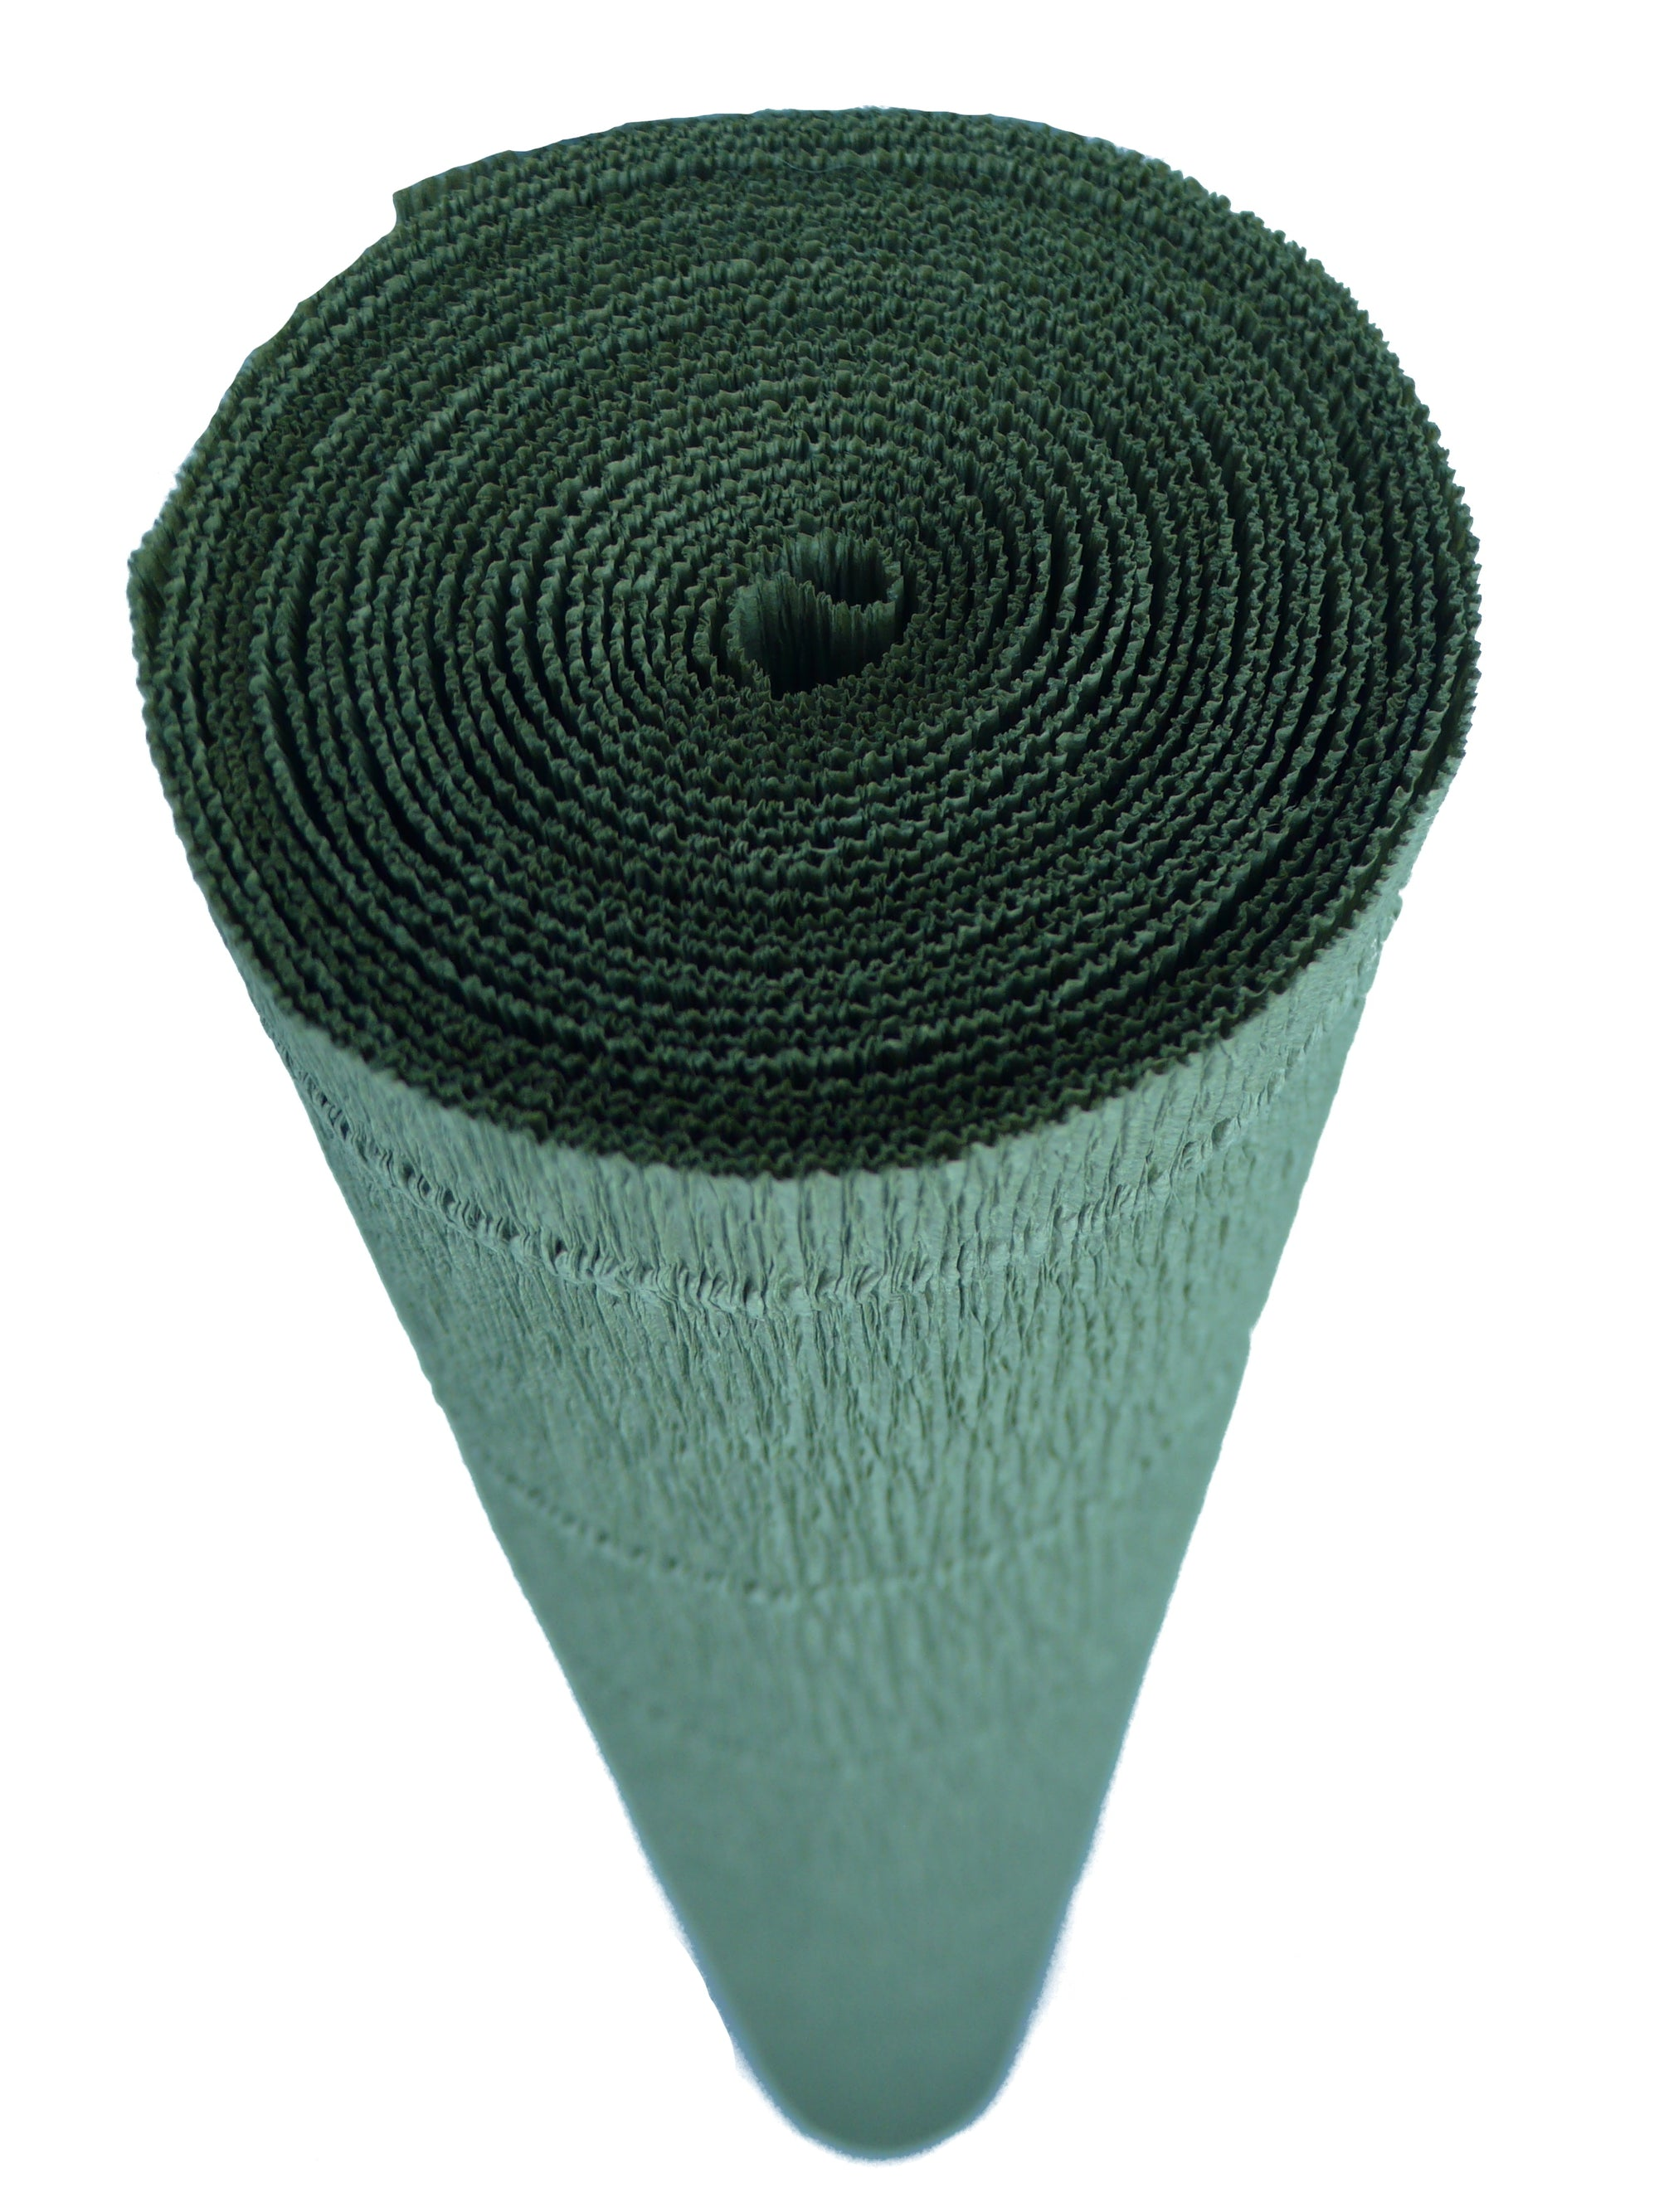 Italian Crepe Paper Roll 180 gram - 612 Antique Green Earth